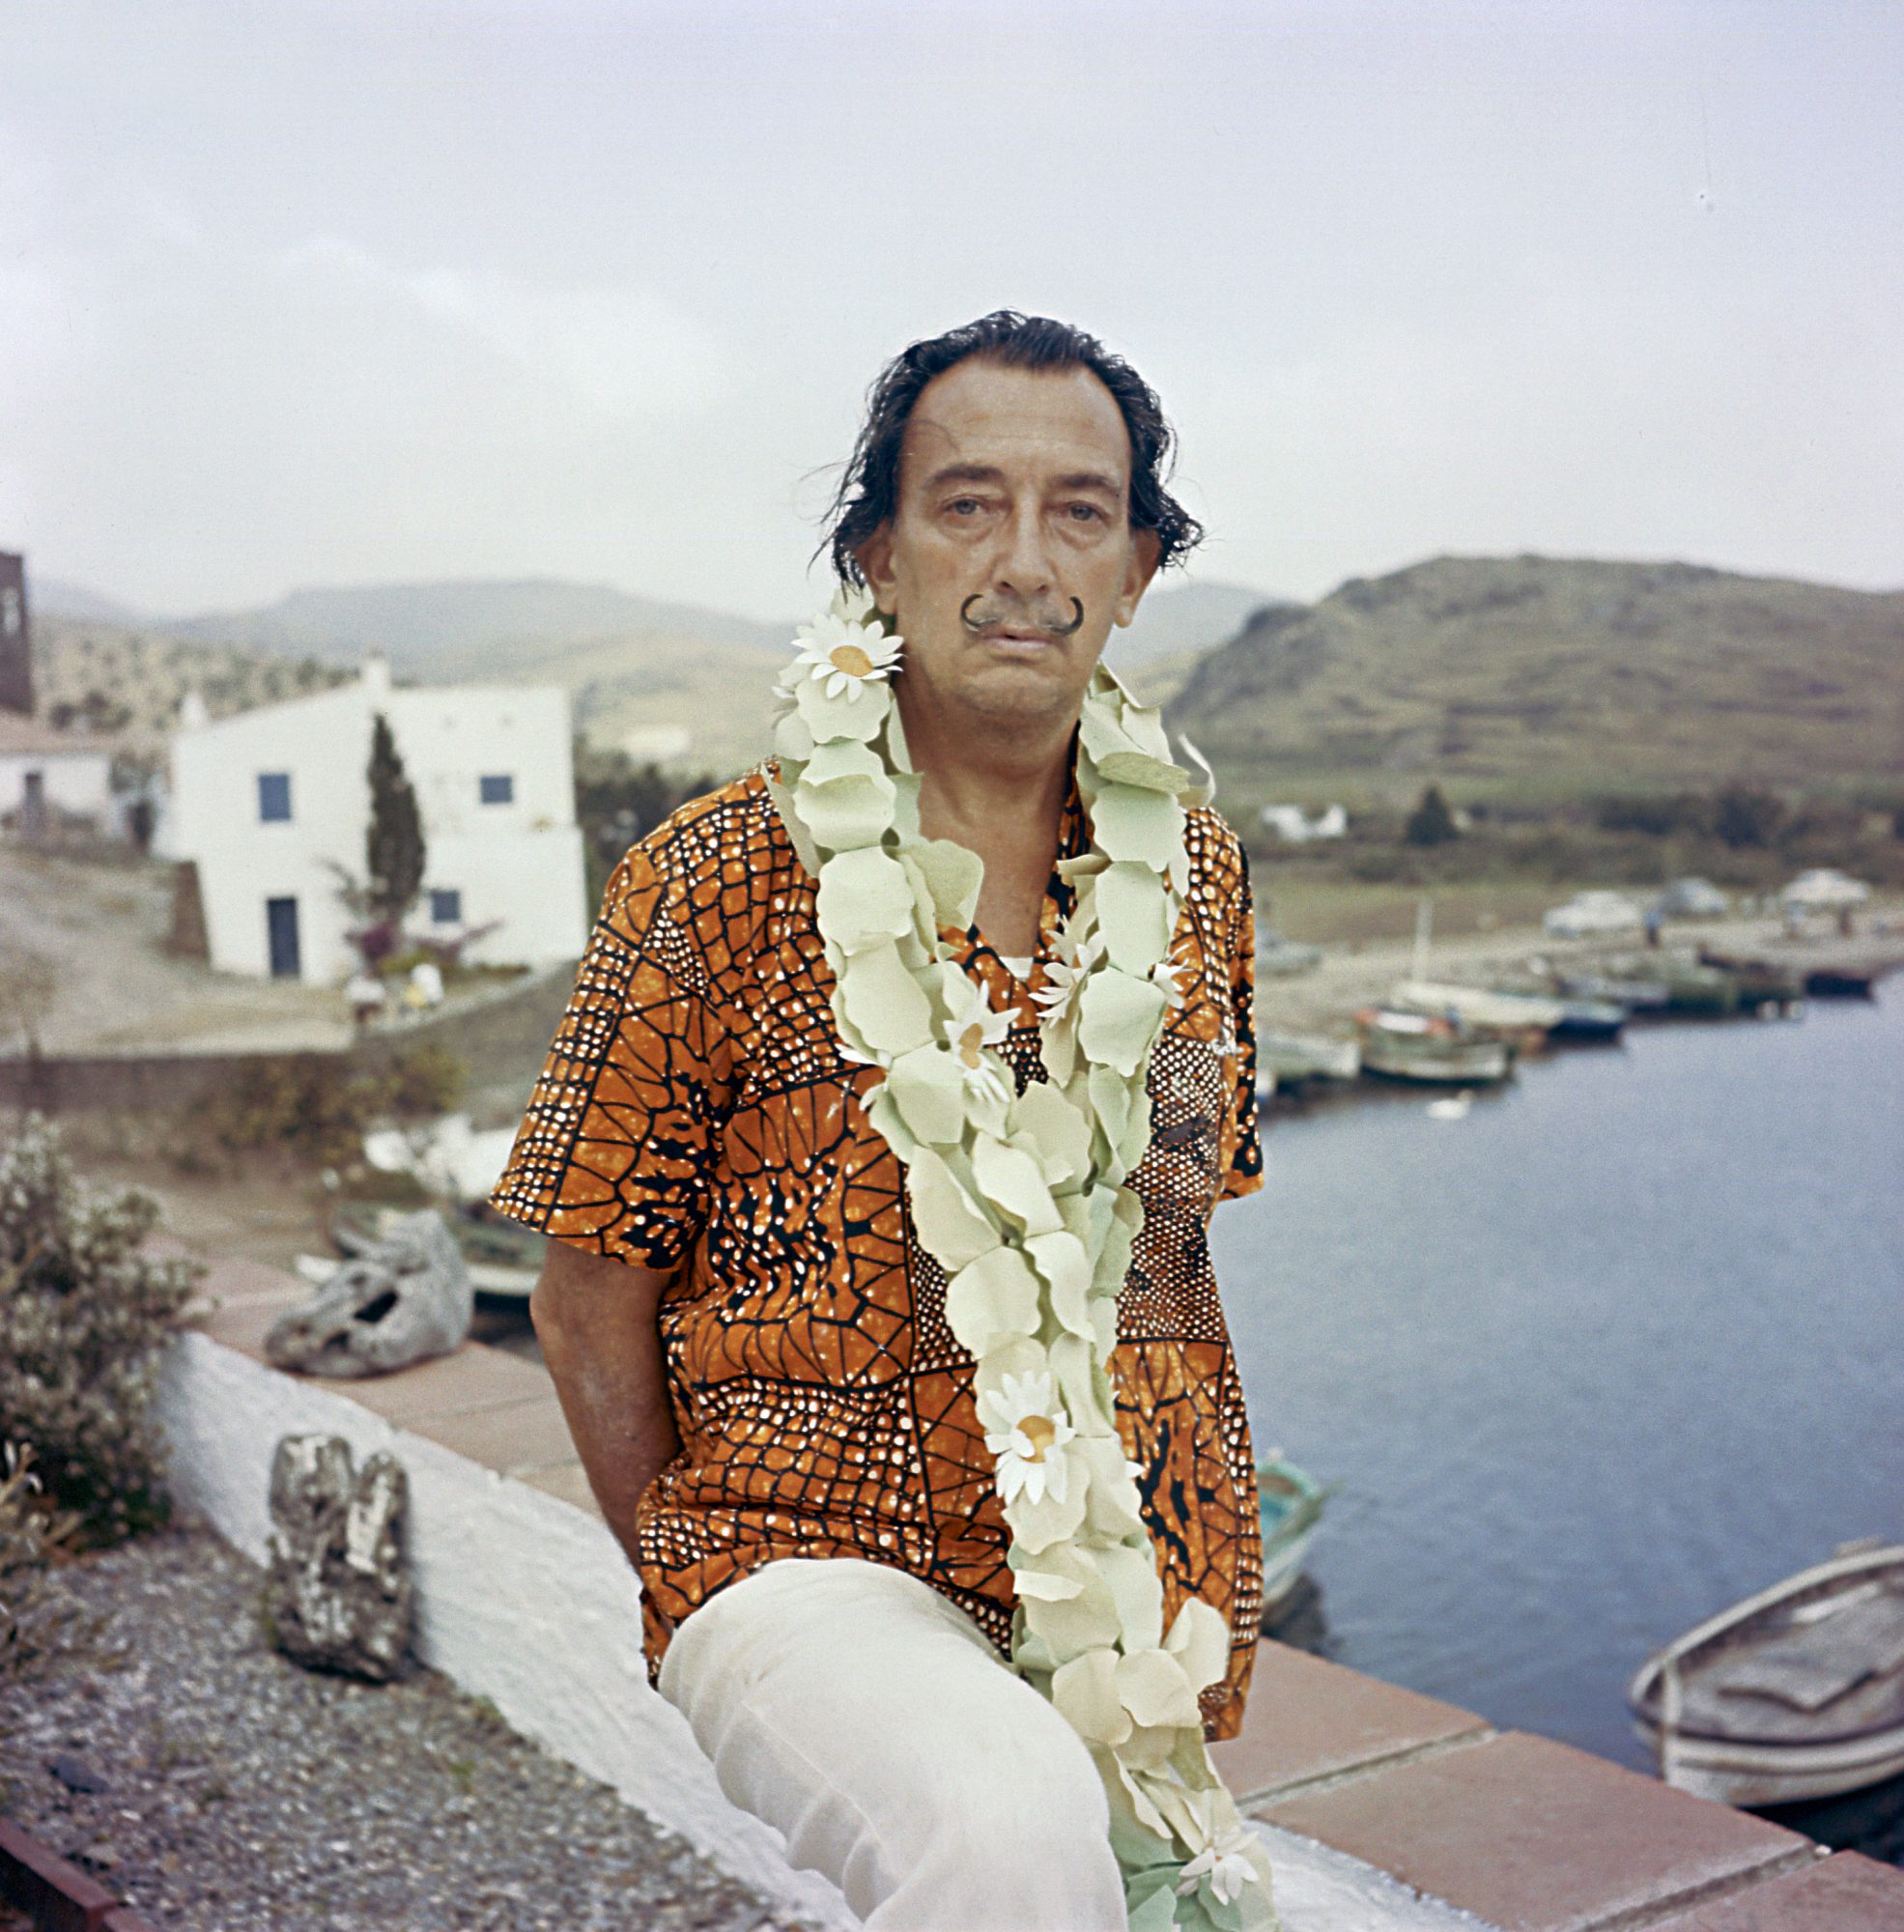 Salvador Dali In Figueres, Spain -